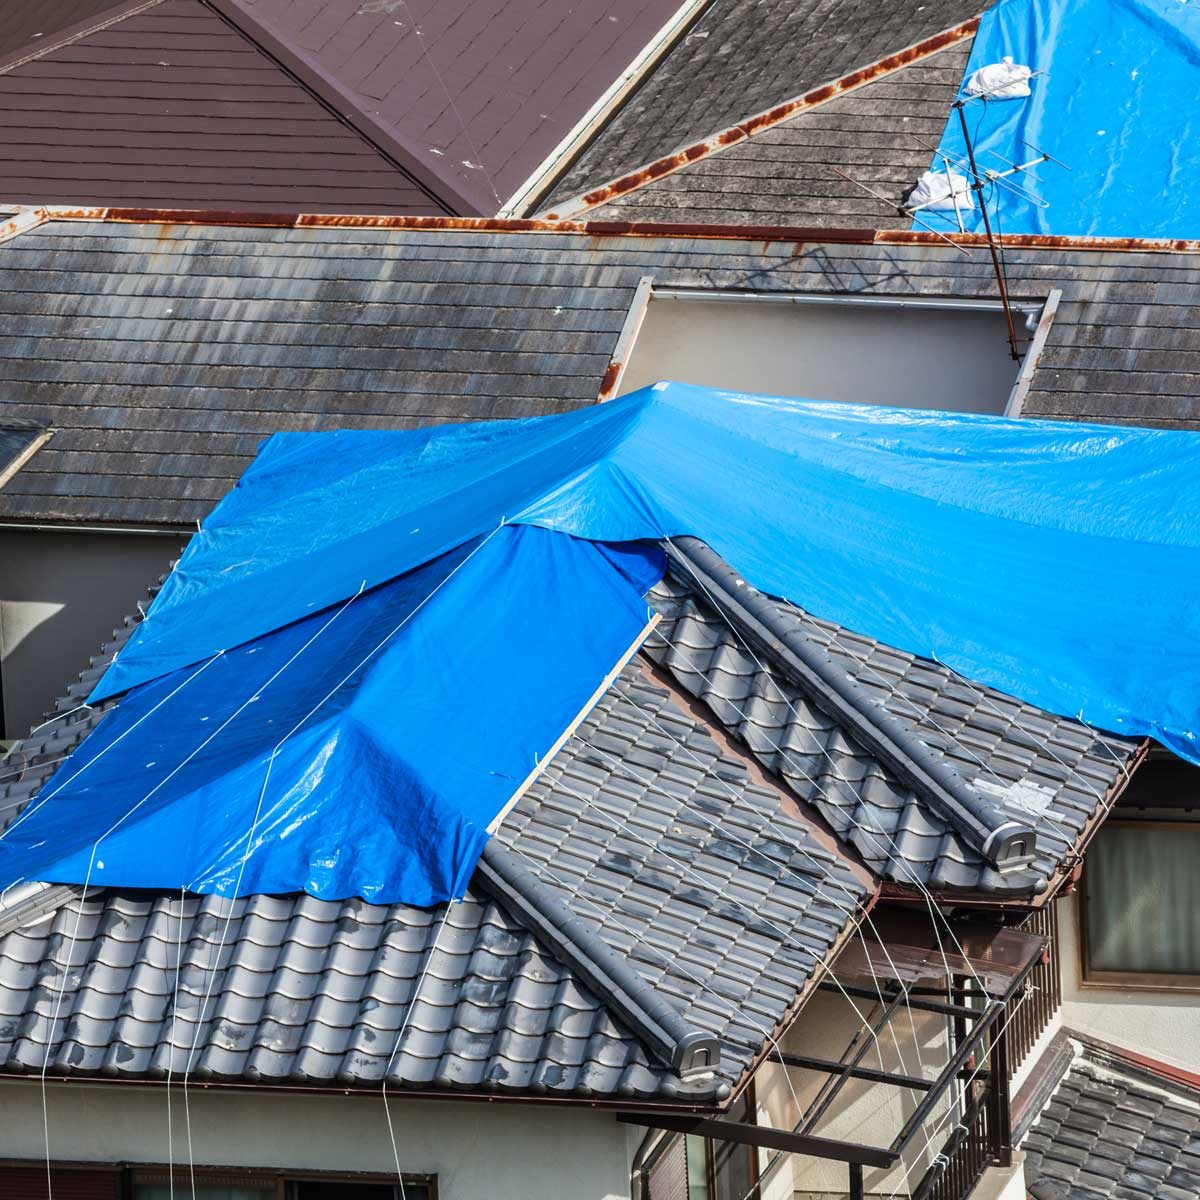 tarps on roofs